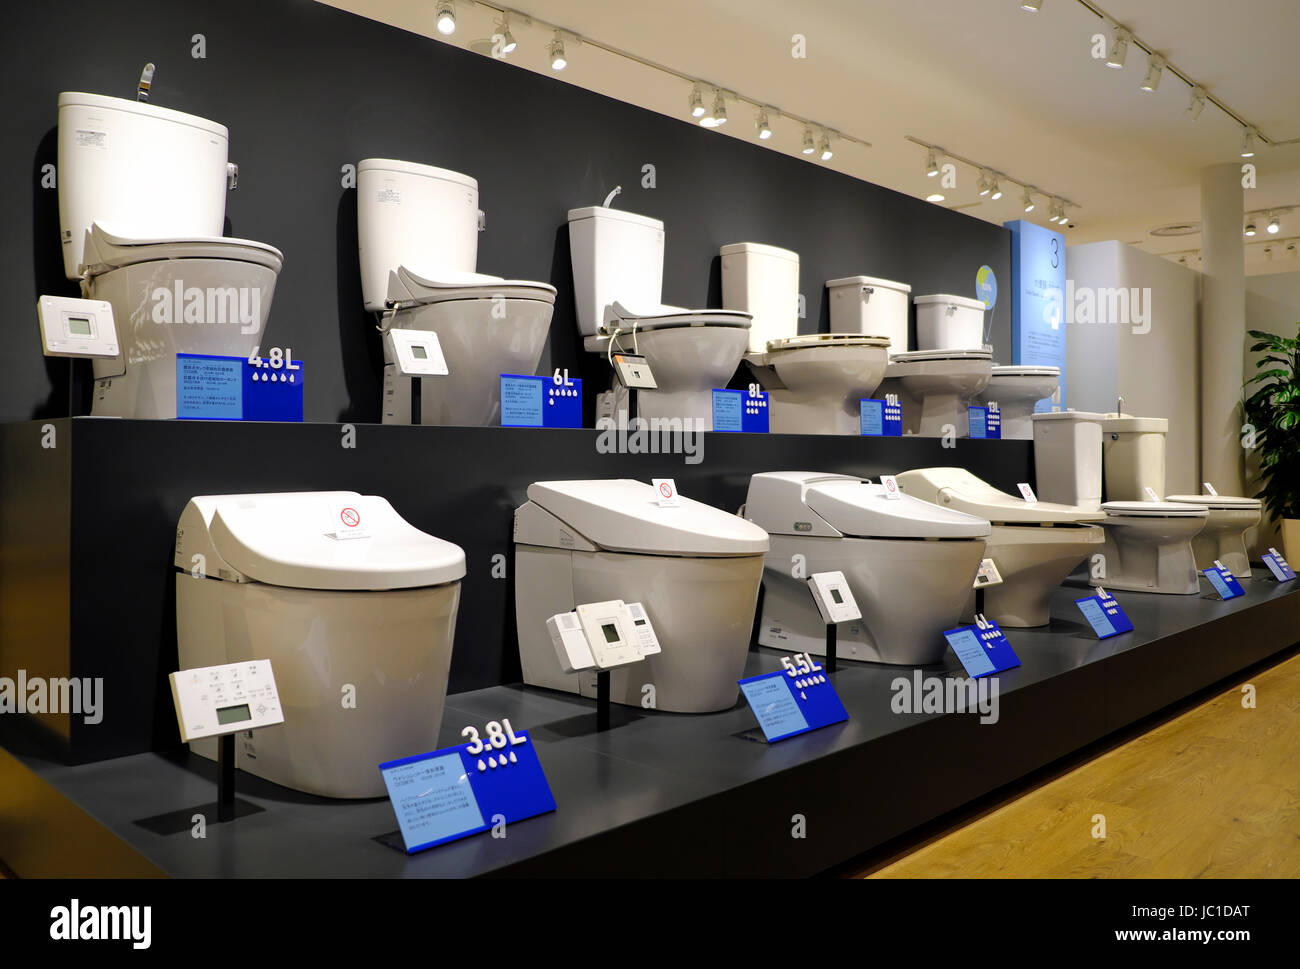 Toto Toilet Museum Stock Photos & Toto Toilet Museum Stock Images ...